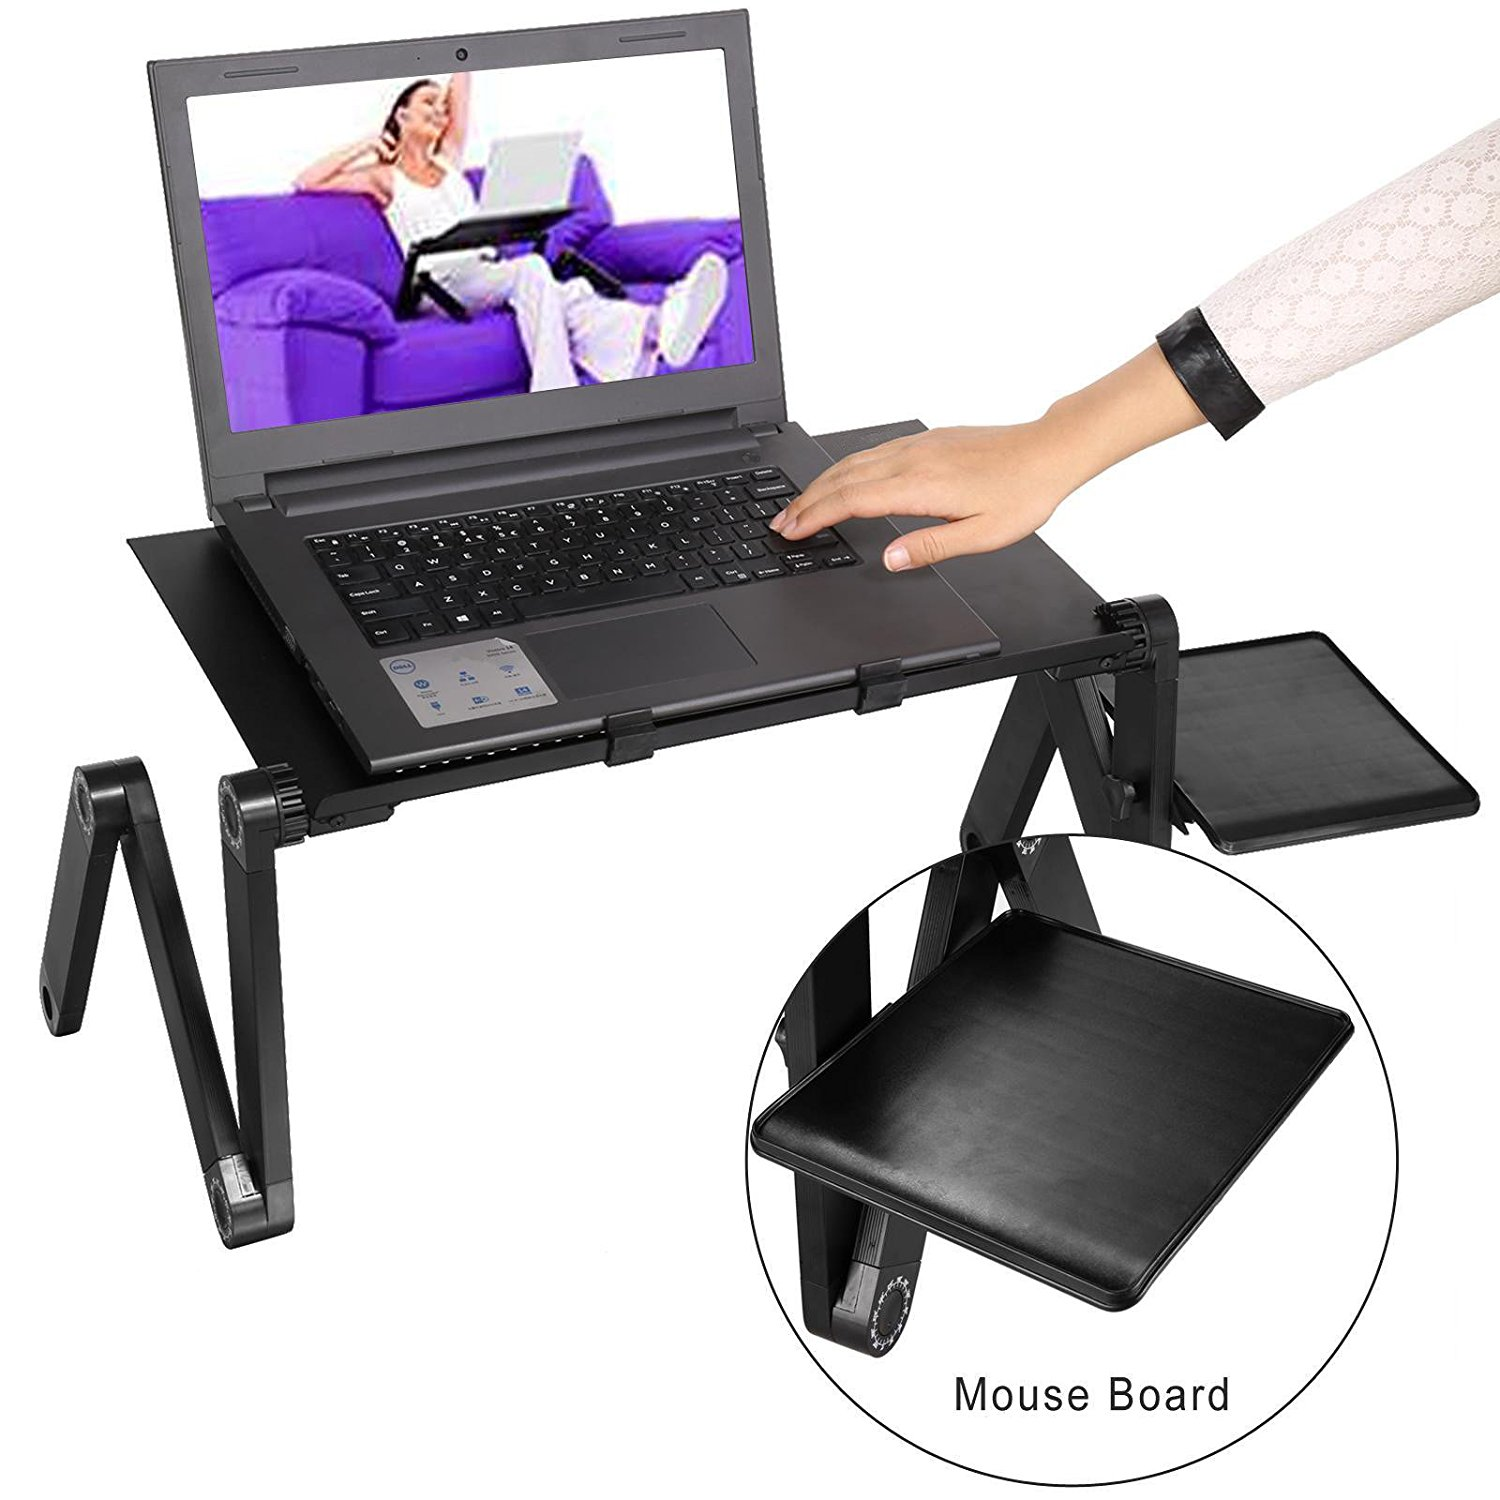 Keland 360 Degree Adjustable Foldable Computer Desk, Portable Lightweight Multifunction Laptop Table Stand with Mouse Board, Black (US Stock)